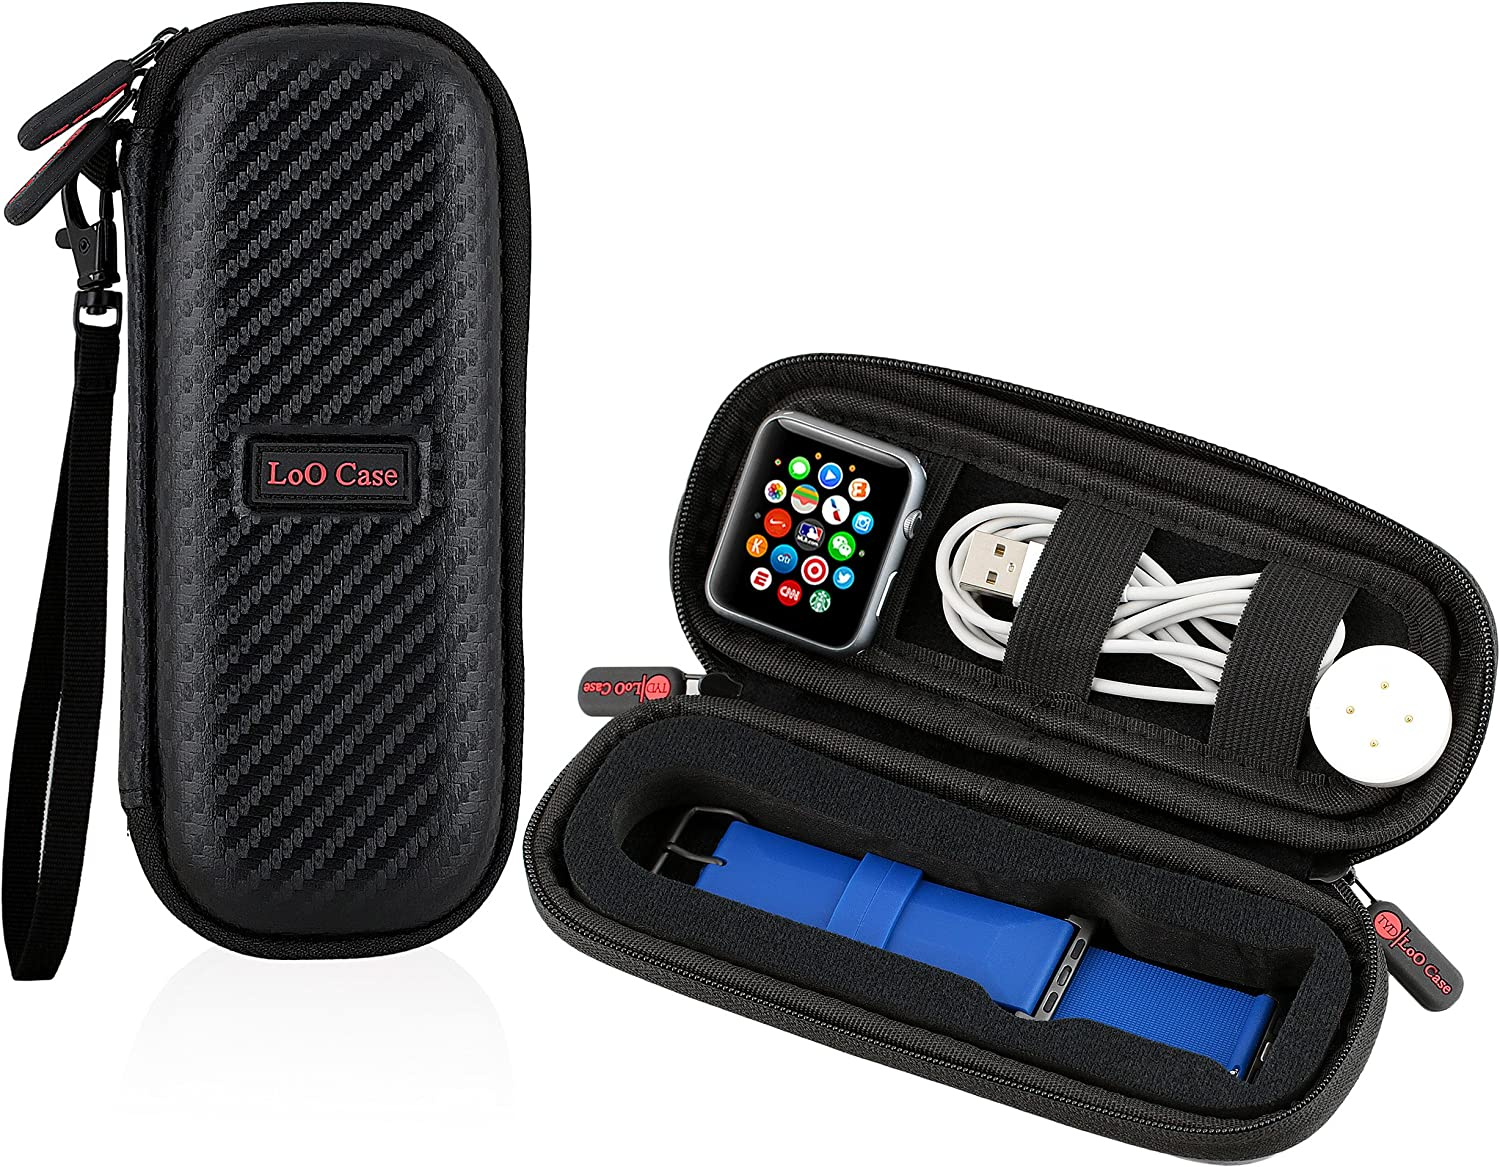 The LoO Company: Smartwatch Travel Case Compact – For Smart Watch, Compatible with Apple Watch, Fitbit Blaze, Huawei – Watch Bands & Accessories Case – Holds Multiple Smartwatch Bands (Carbon Fiber)